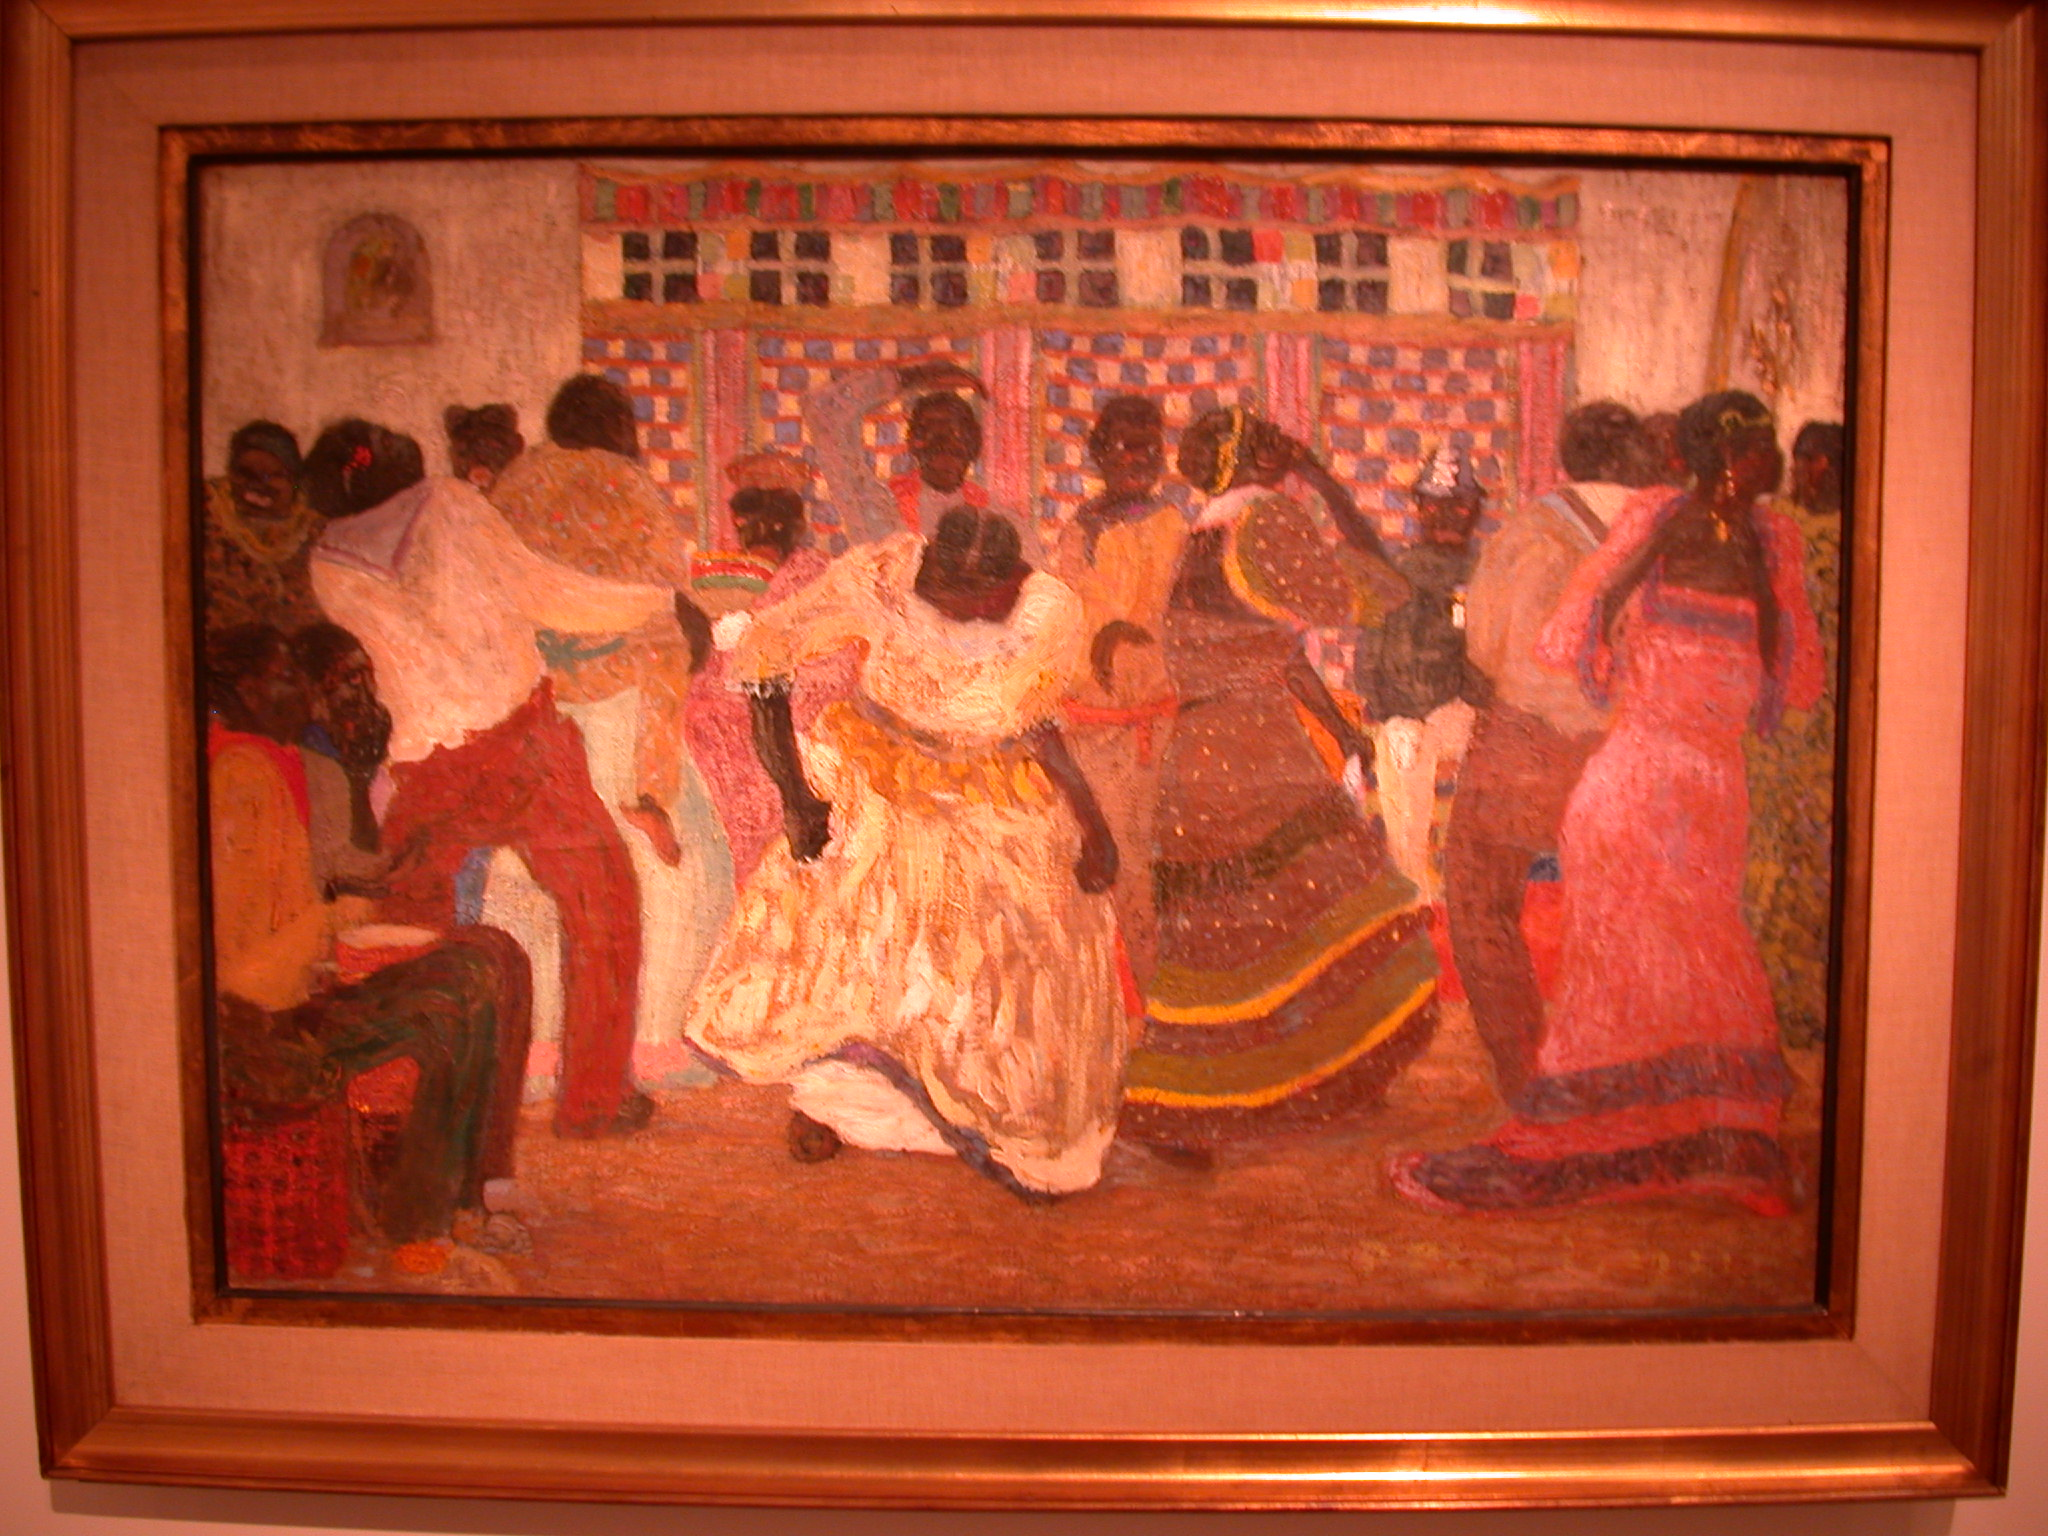 Candombe, Painting by Pedro Figari, MALBA Museum, Buenos Aires, Argentina